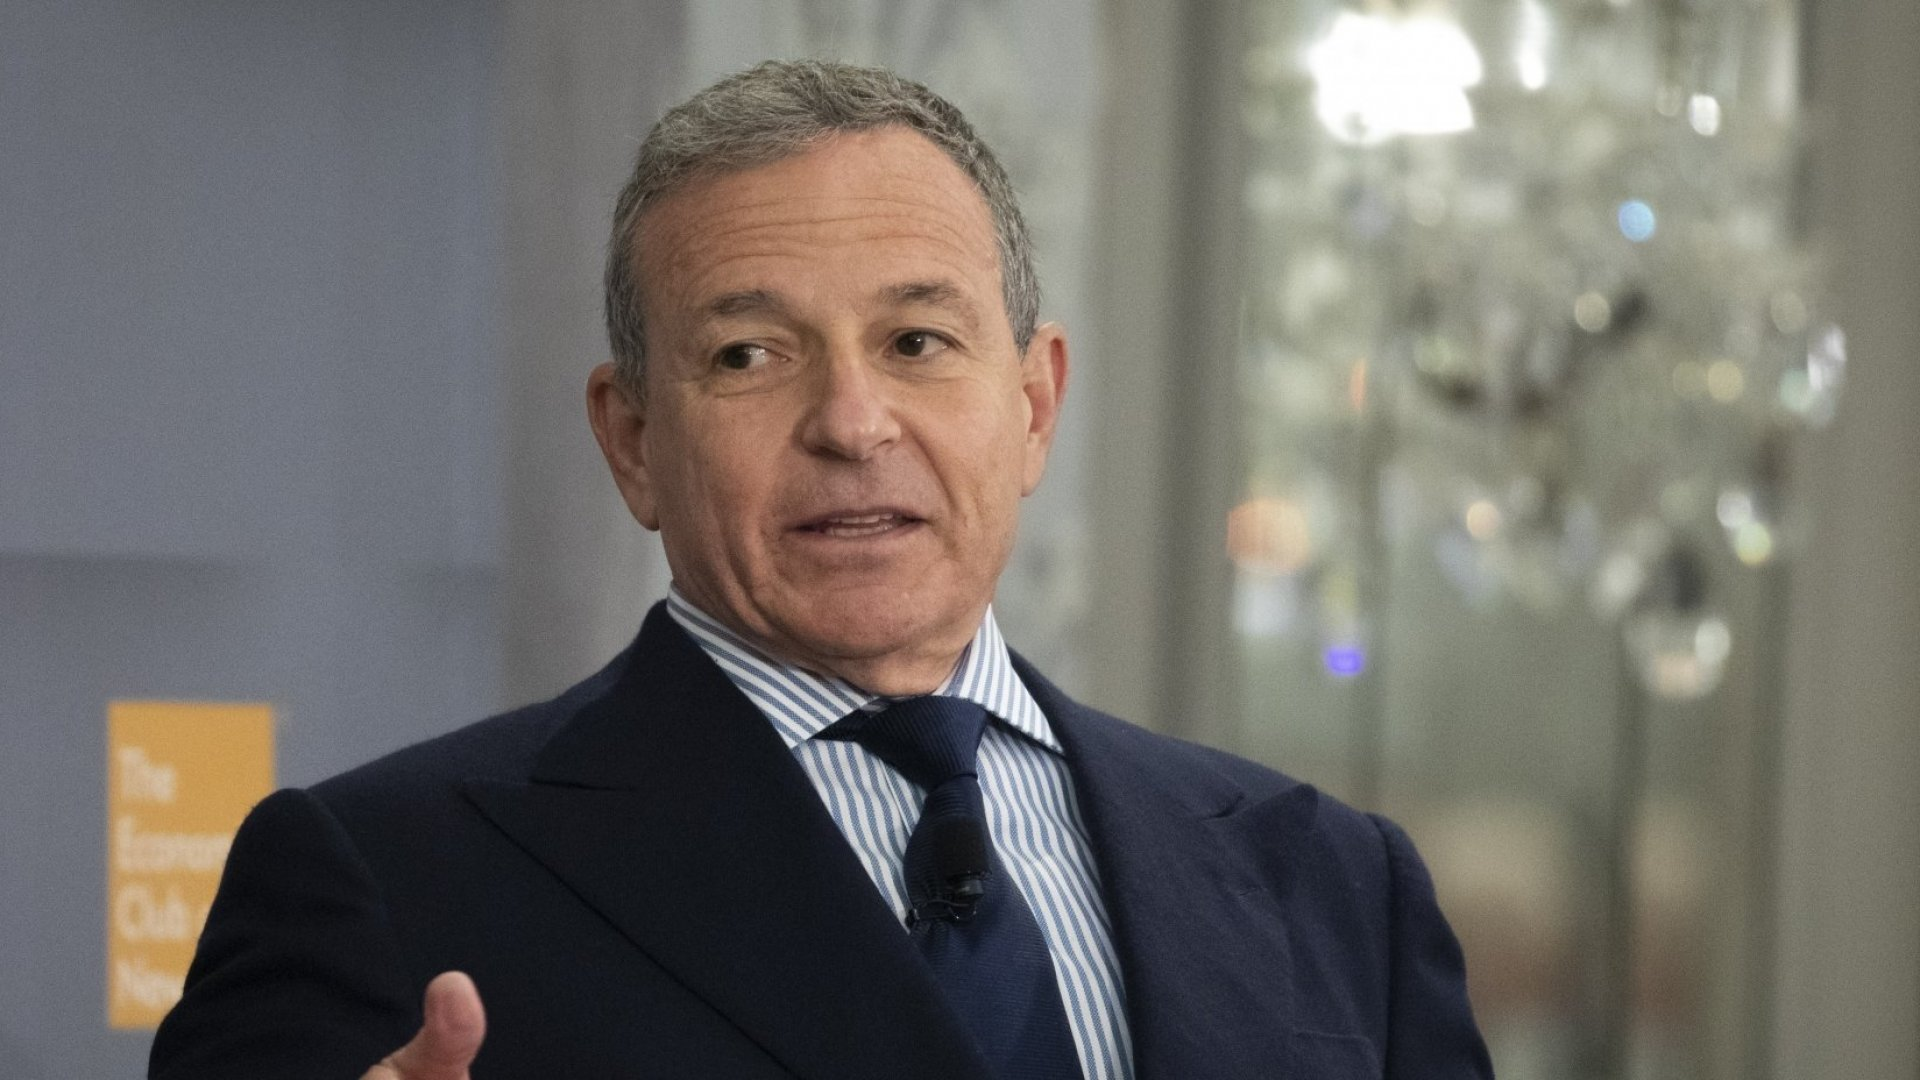 Disney CEO Bob Iger Just Issued a Public Apology, and It's a Lesson in Corporate Humility